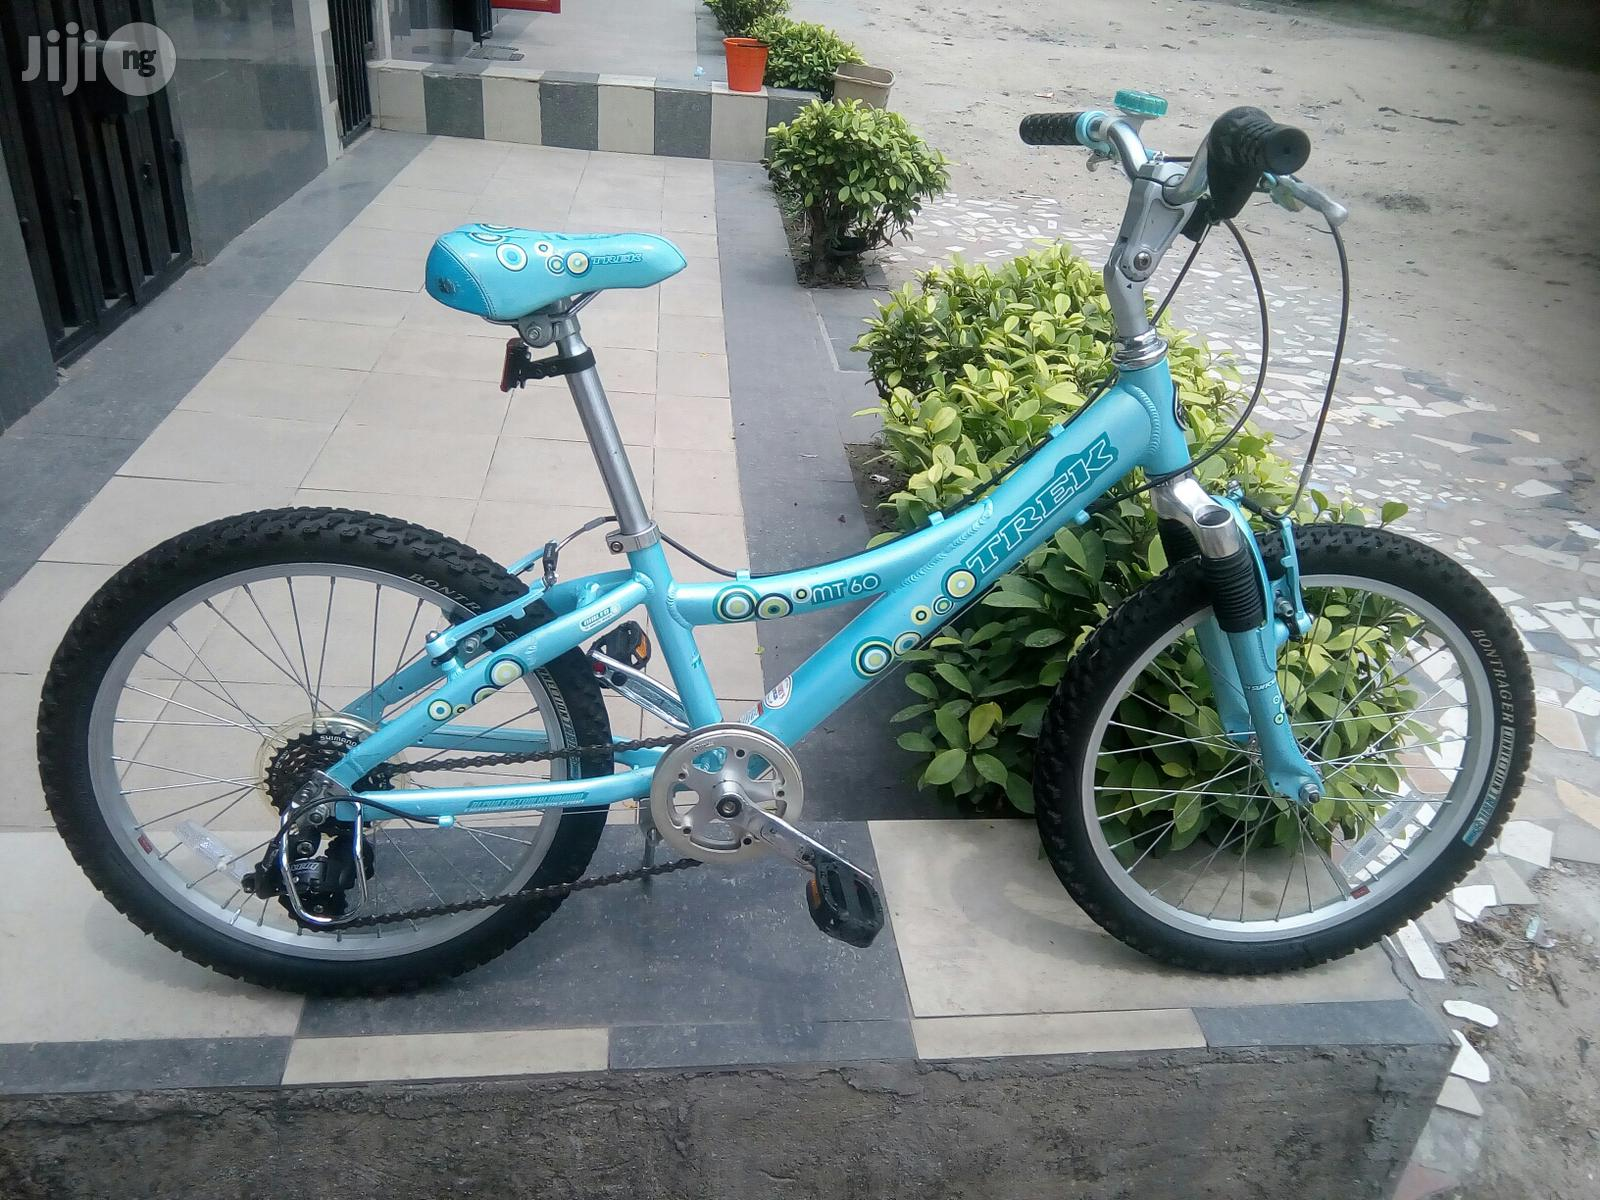 Trek Mt60 Children Bicycle 20 Inches | Toys for sale in Central Business Dis, Abuja (FCT) State, Nigeria